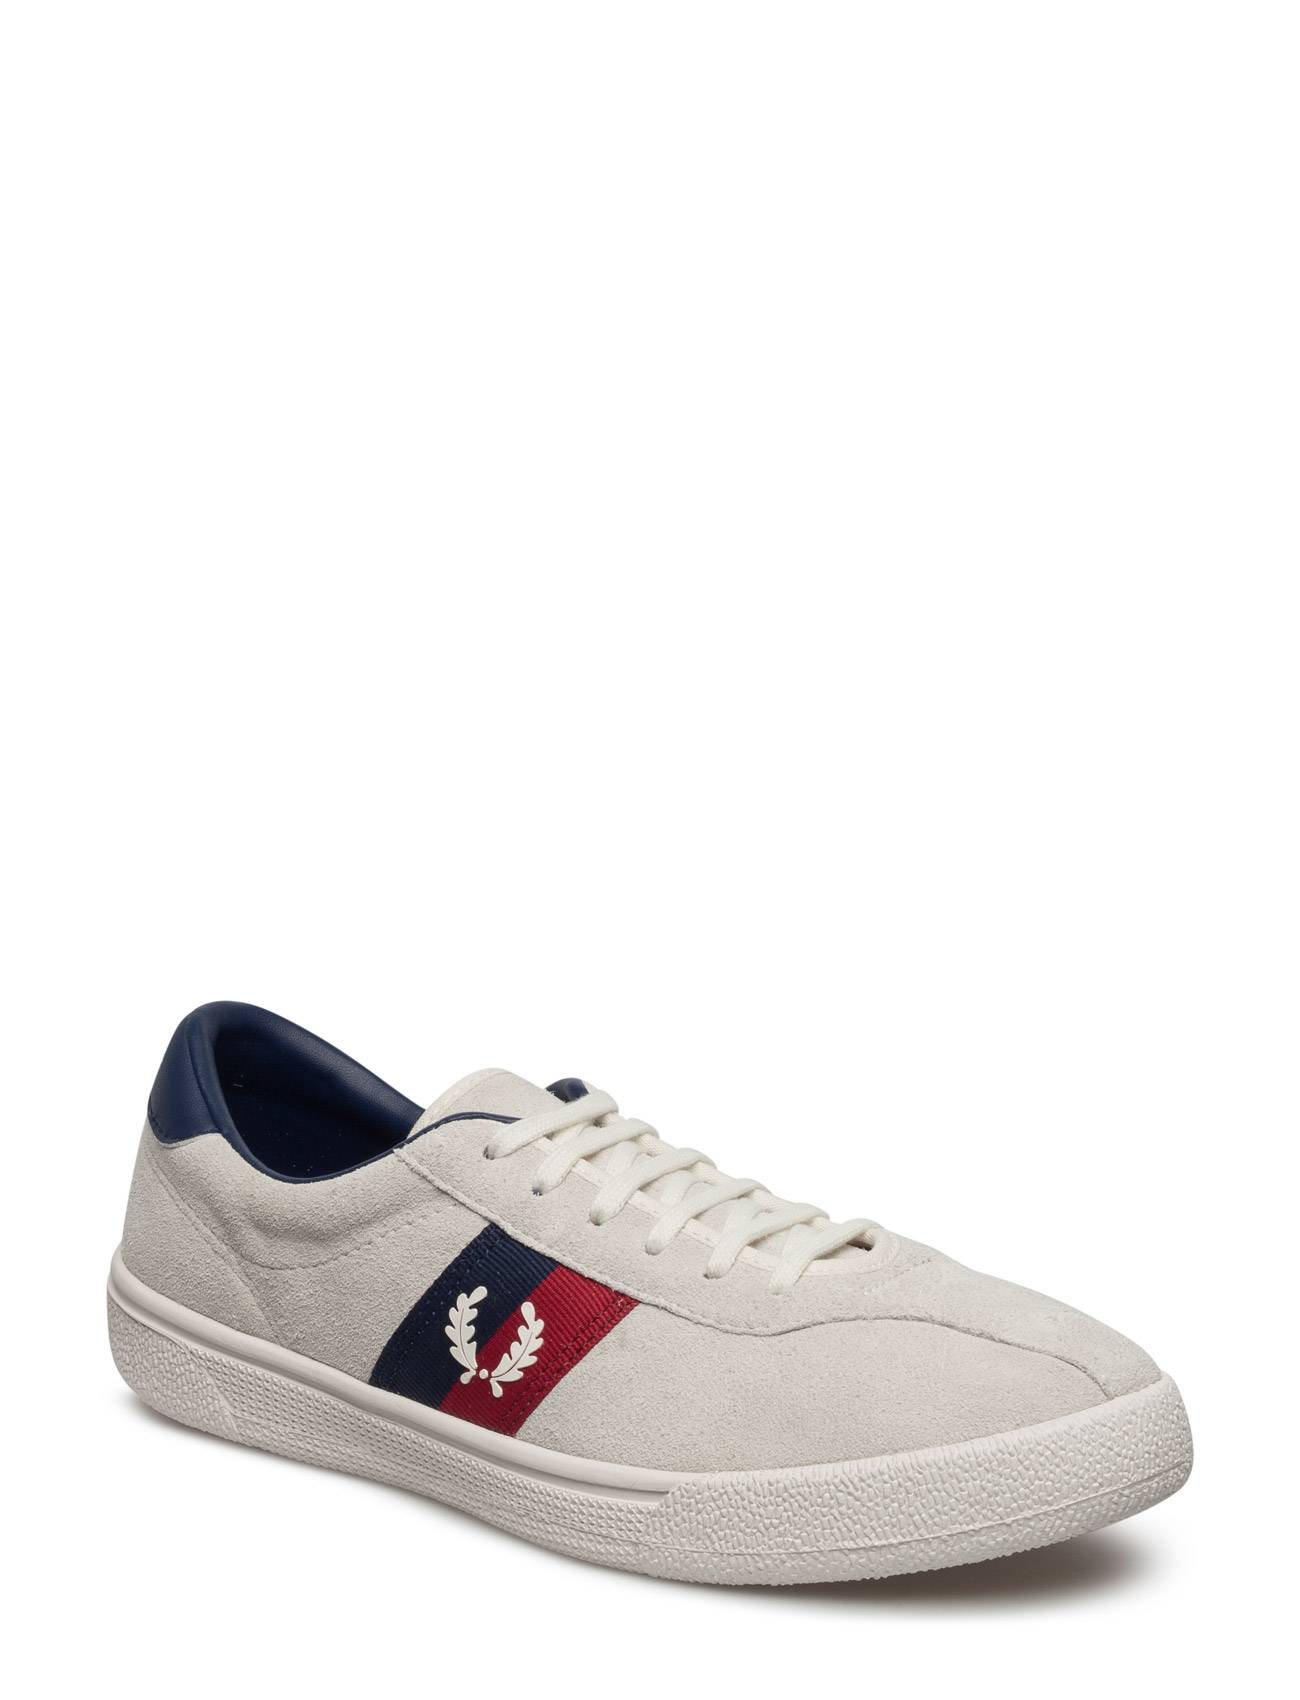 Fred Perry Fp Sprts Ath Tnns Shoe1